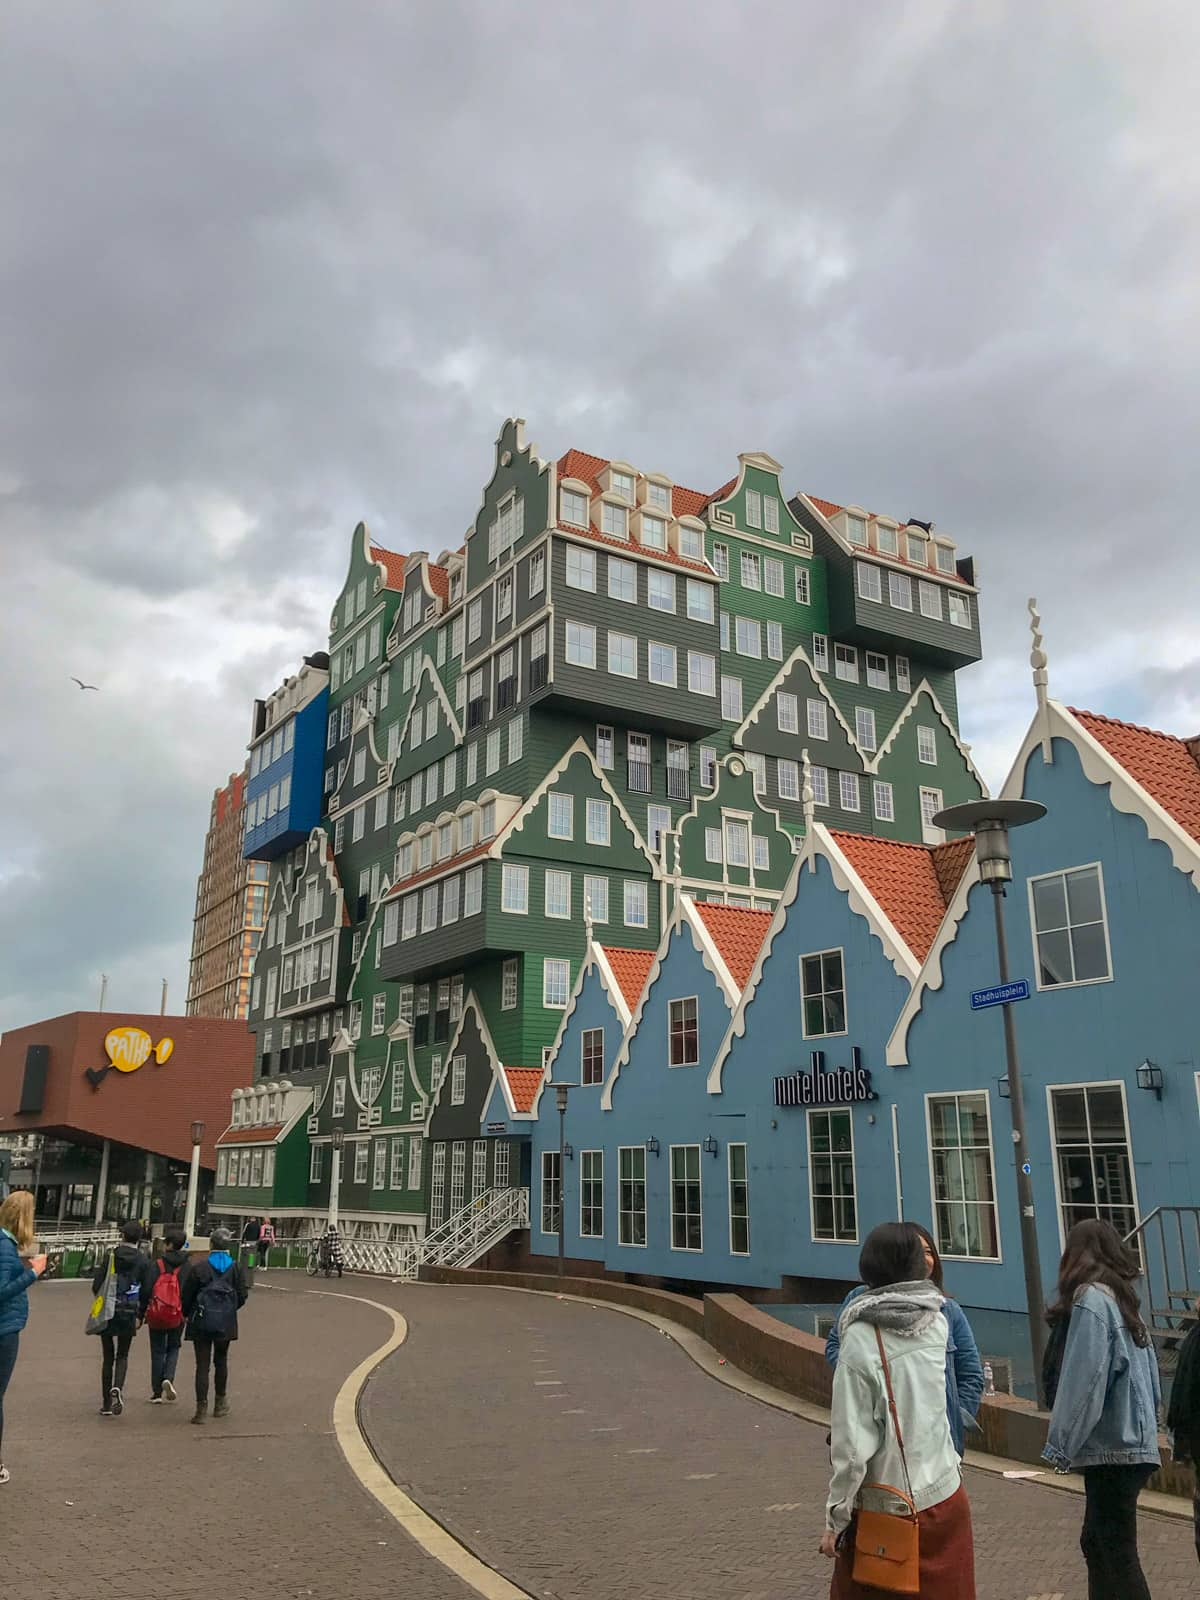 An interestingly-architectured building resembling little houses put together, in colours of green, blue, and blue-grey. The sky is very grey.